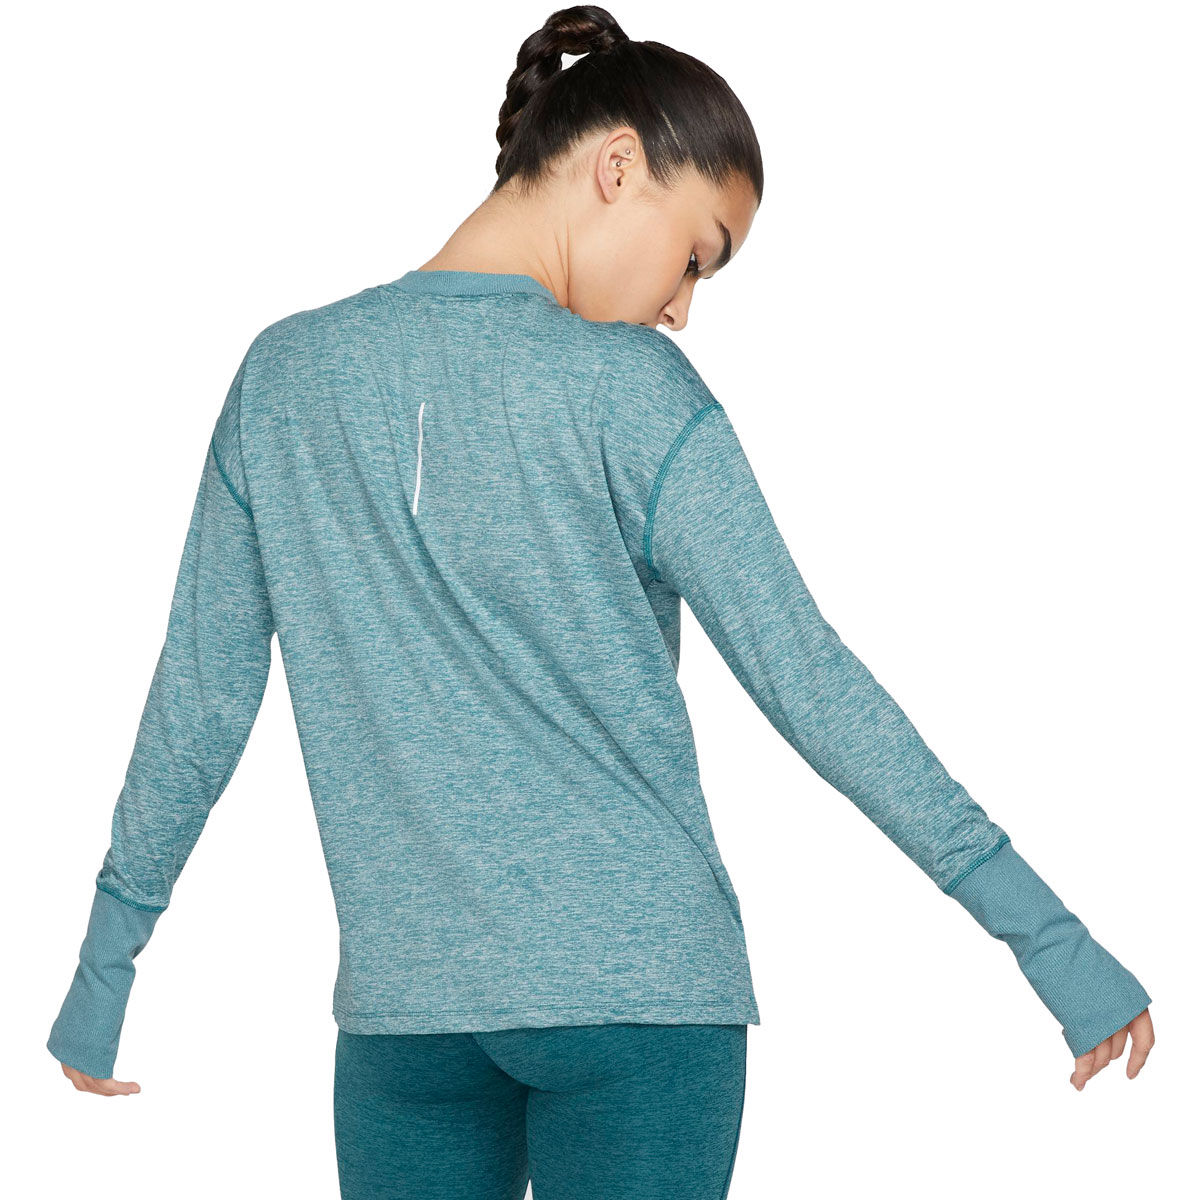 Women's Nike Element Running Top - Color: Mineral Teal/Htr/Reflective Silver - Size: S, Mineral Teal/Htr/Reflective Silver, large, image 2